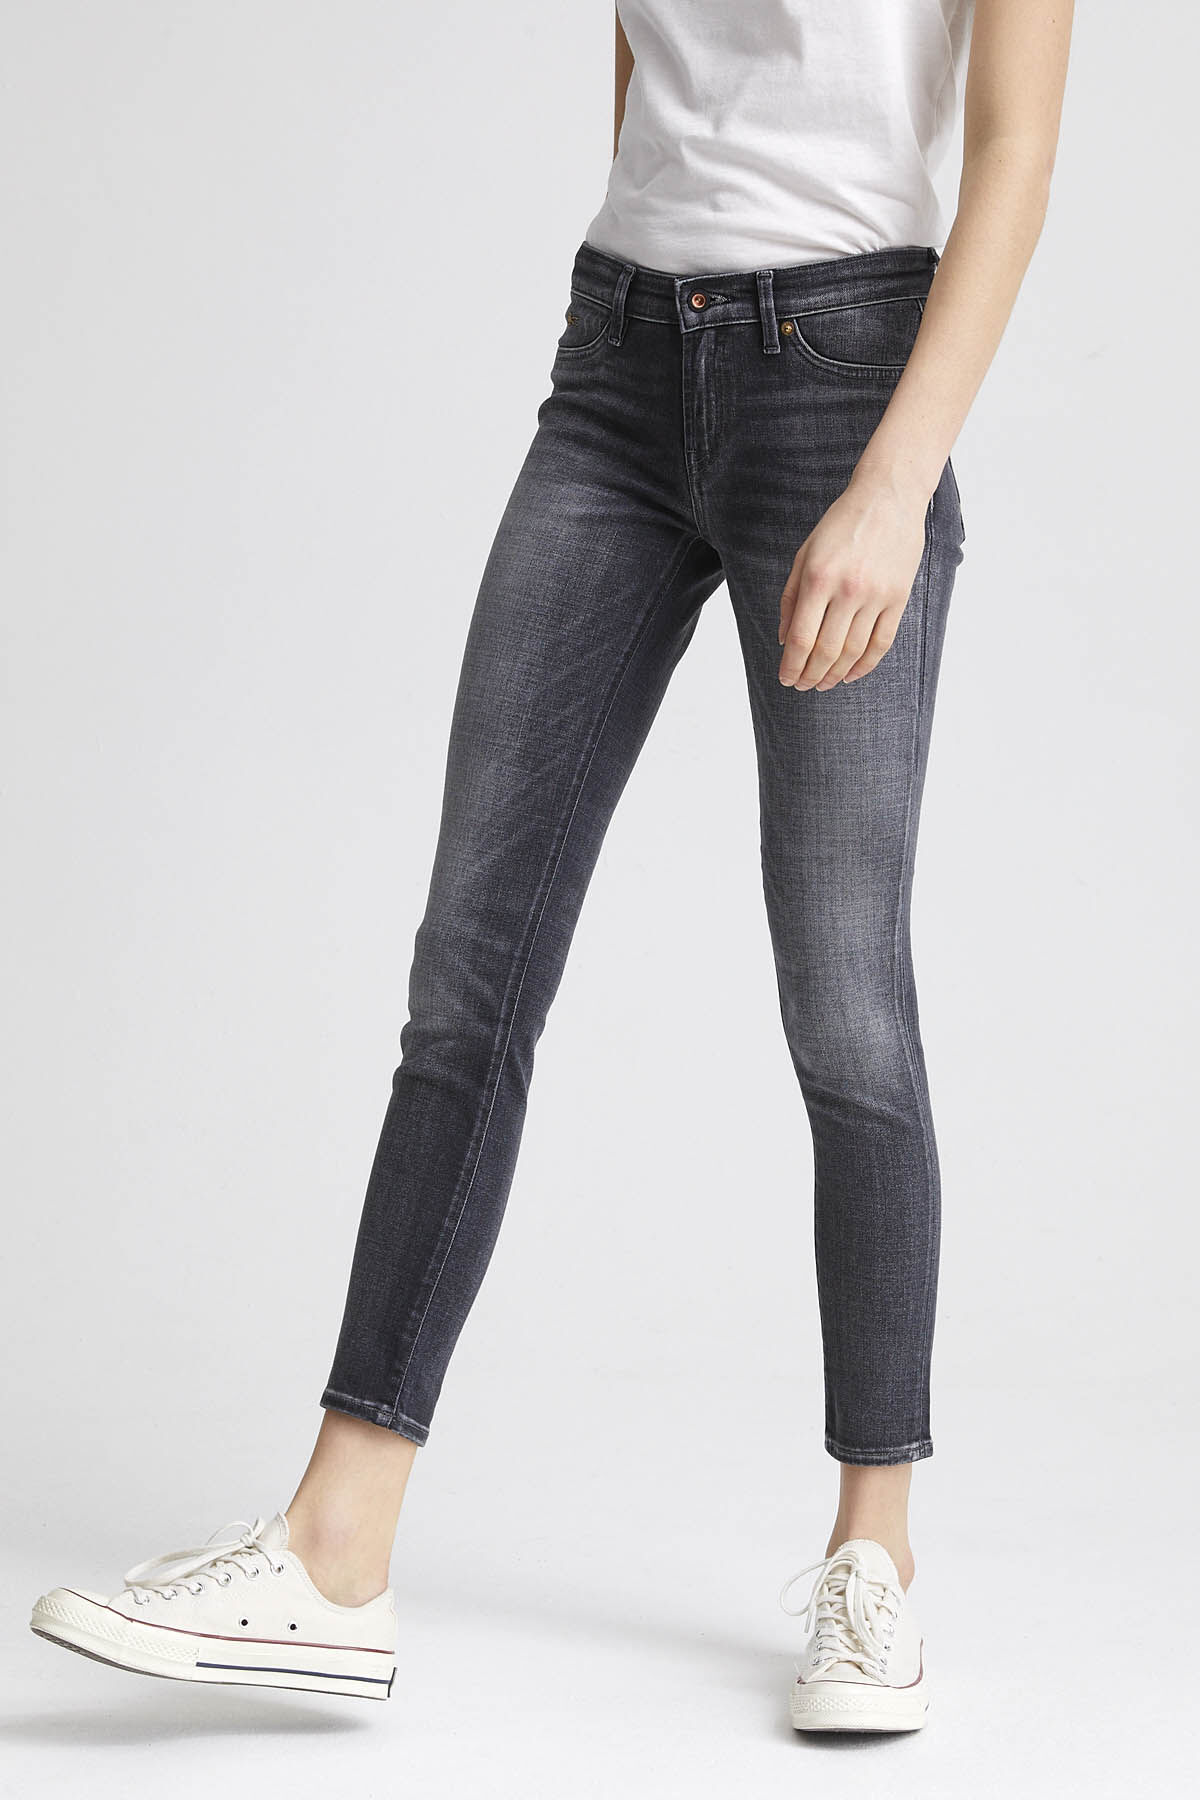 SPRAY Natural fade, Black Denim - Mid-rise, Tight Fit